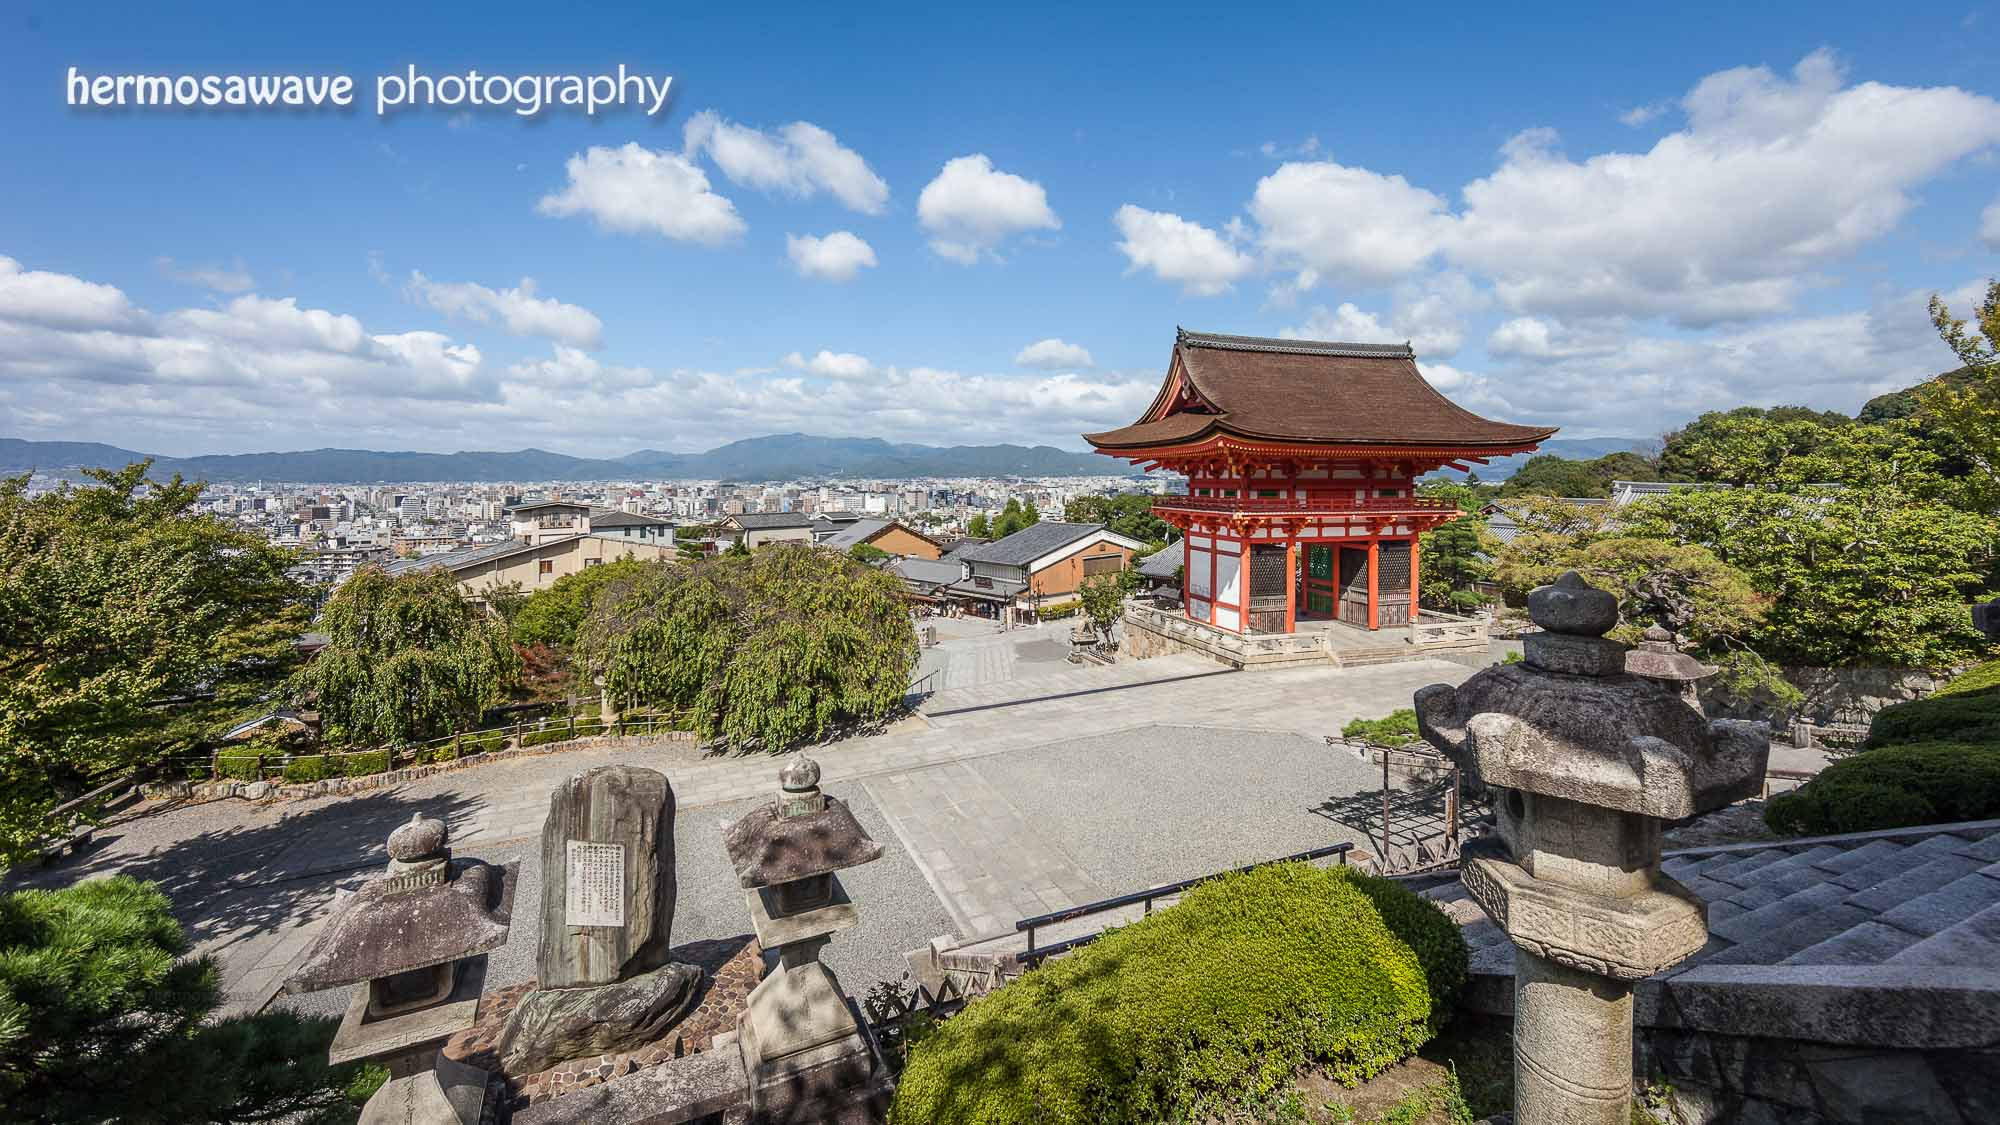 Looking out over Kyoto from Kiyomizudera